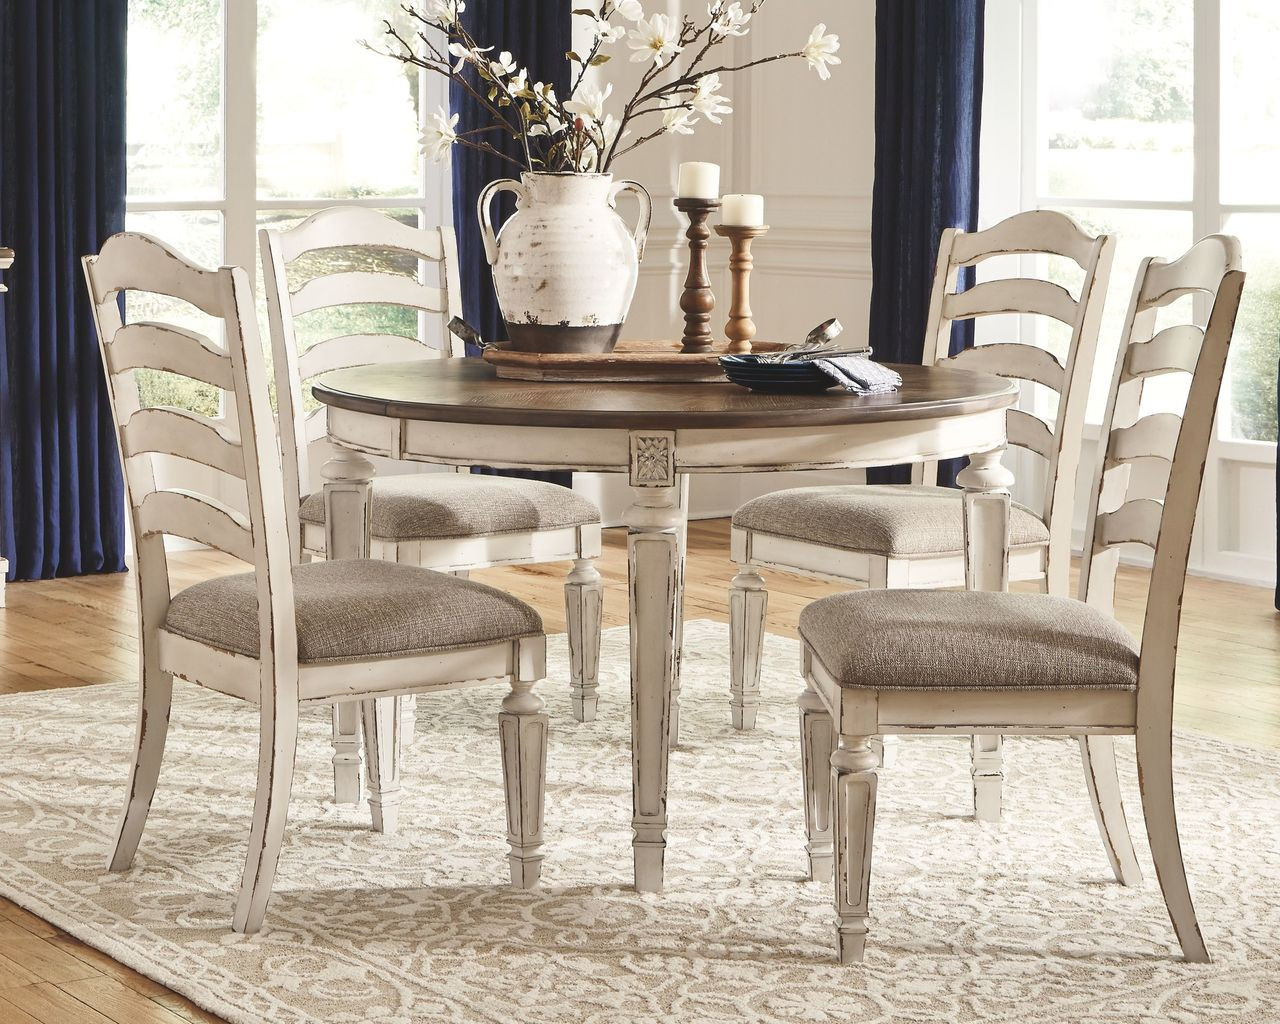 Astounding Ashley Realyn Chipped White 5 Pc Oval Extension Table 4 Upholstered Side Chairs Machost Co Dining Chair Design Ideas Machostcouk